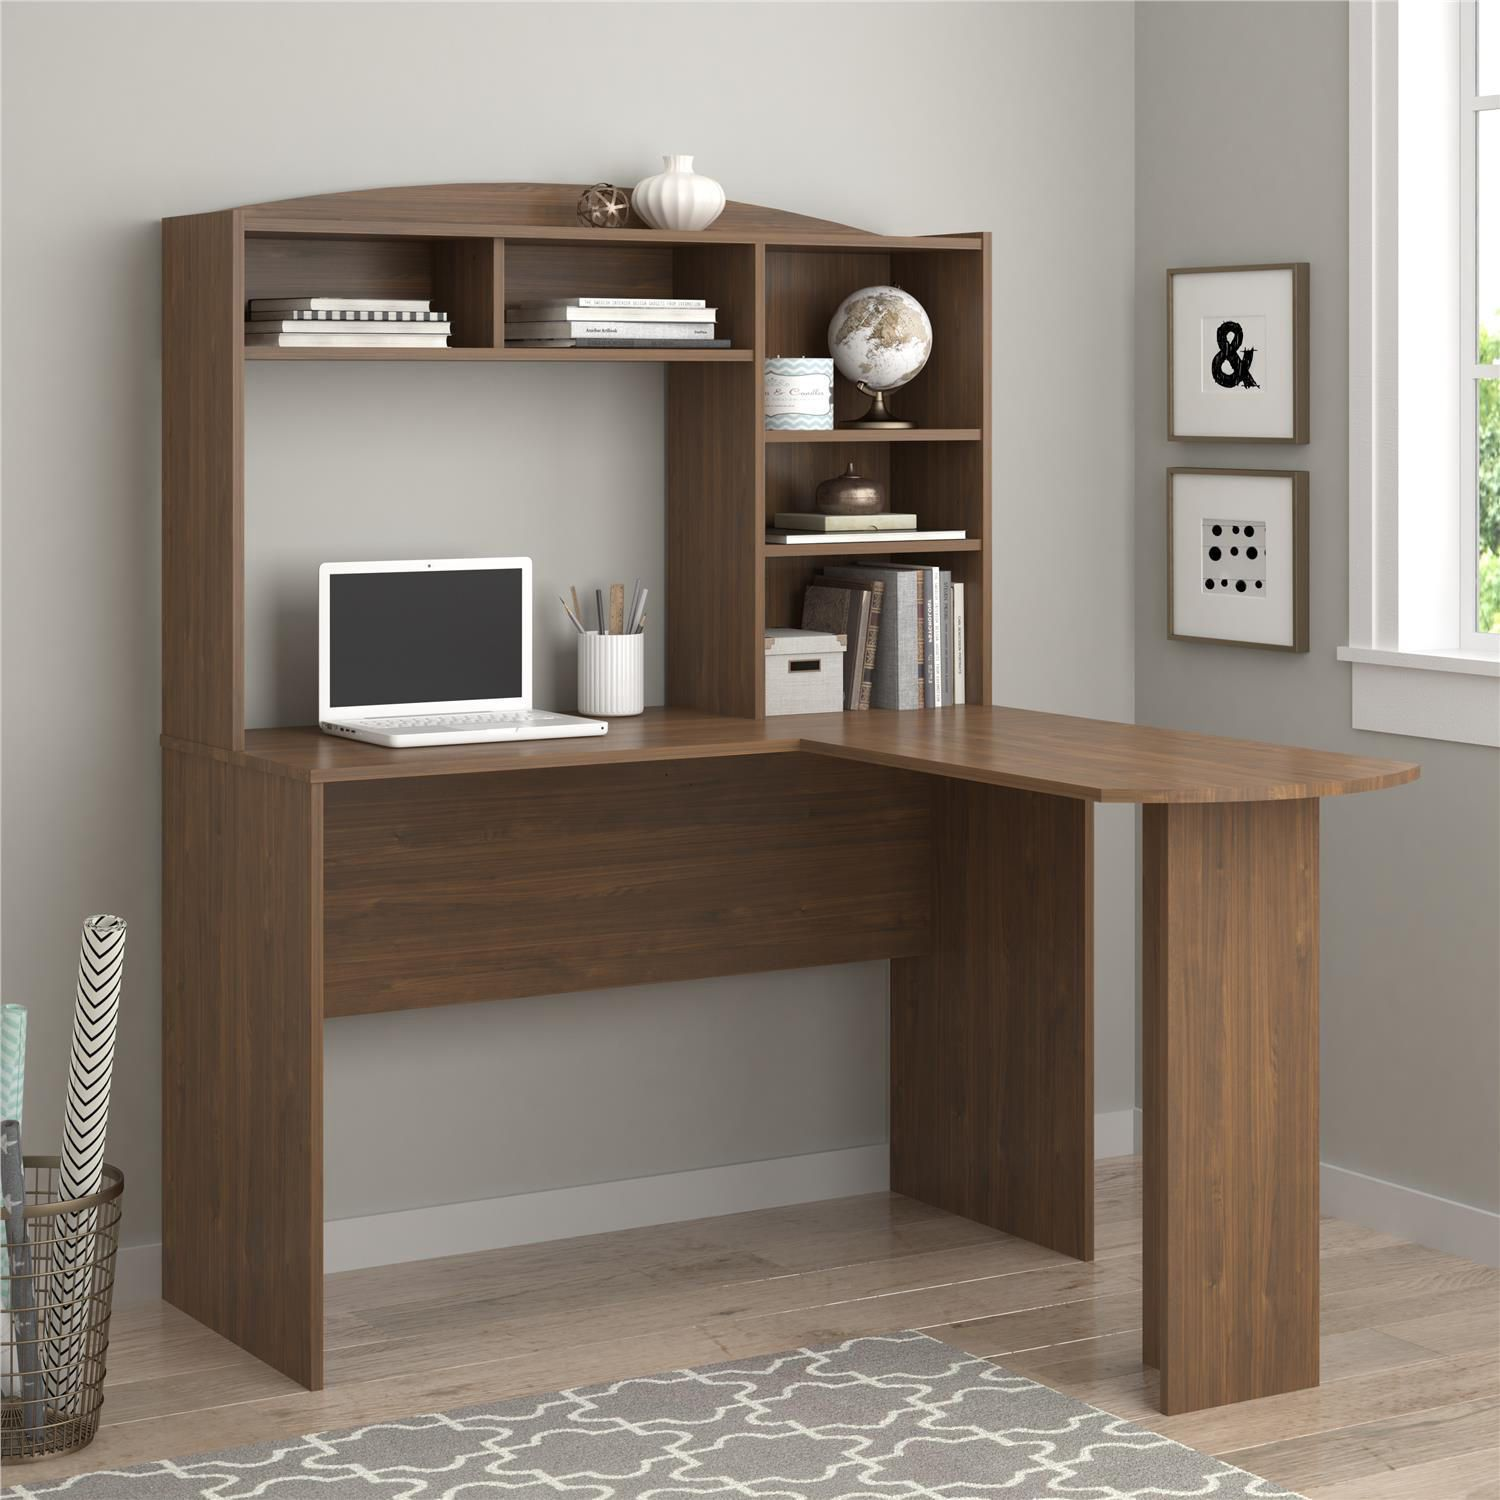 pedestal home drawer corner product oak and cabot espresso shipping file desk today cabinet free collection hutch garden overstock